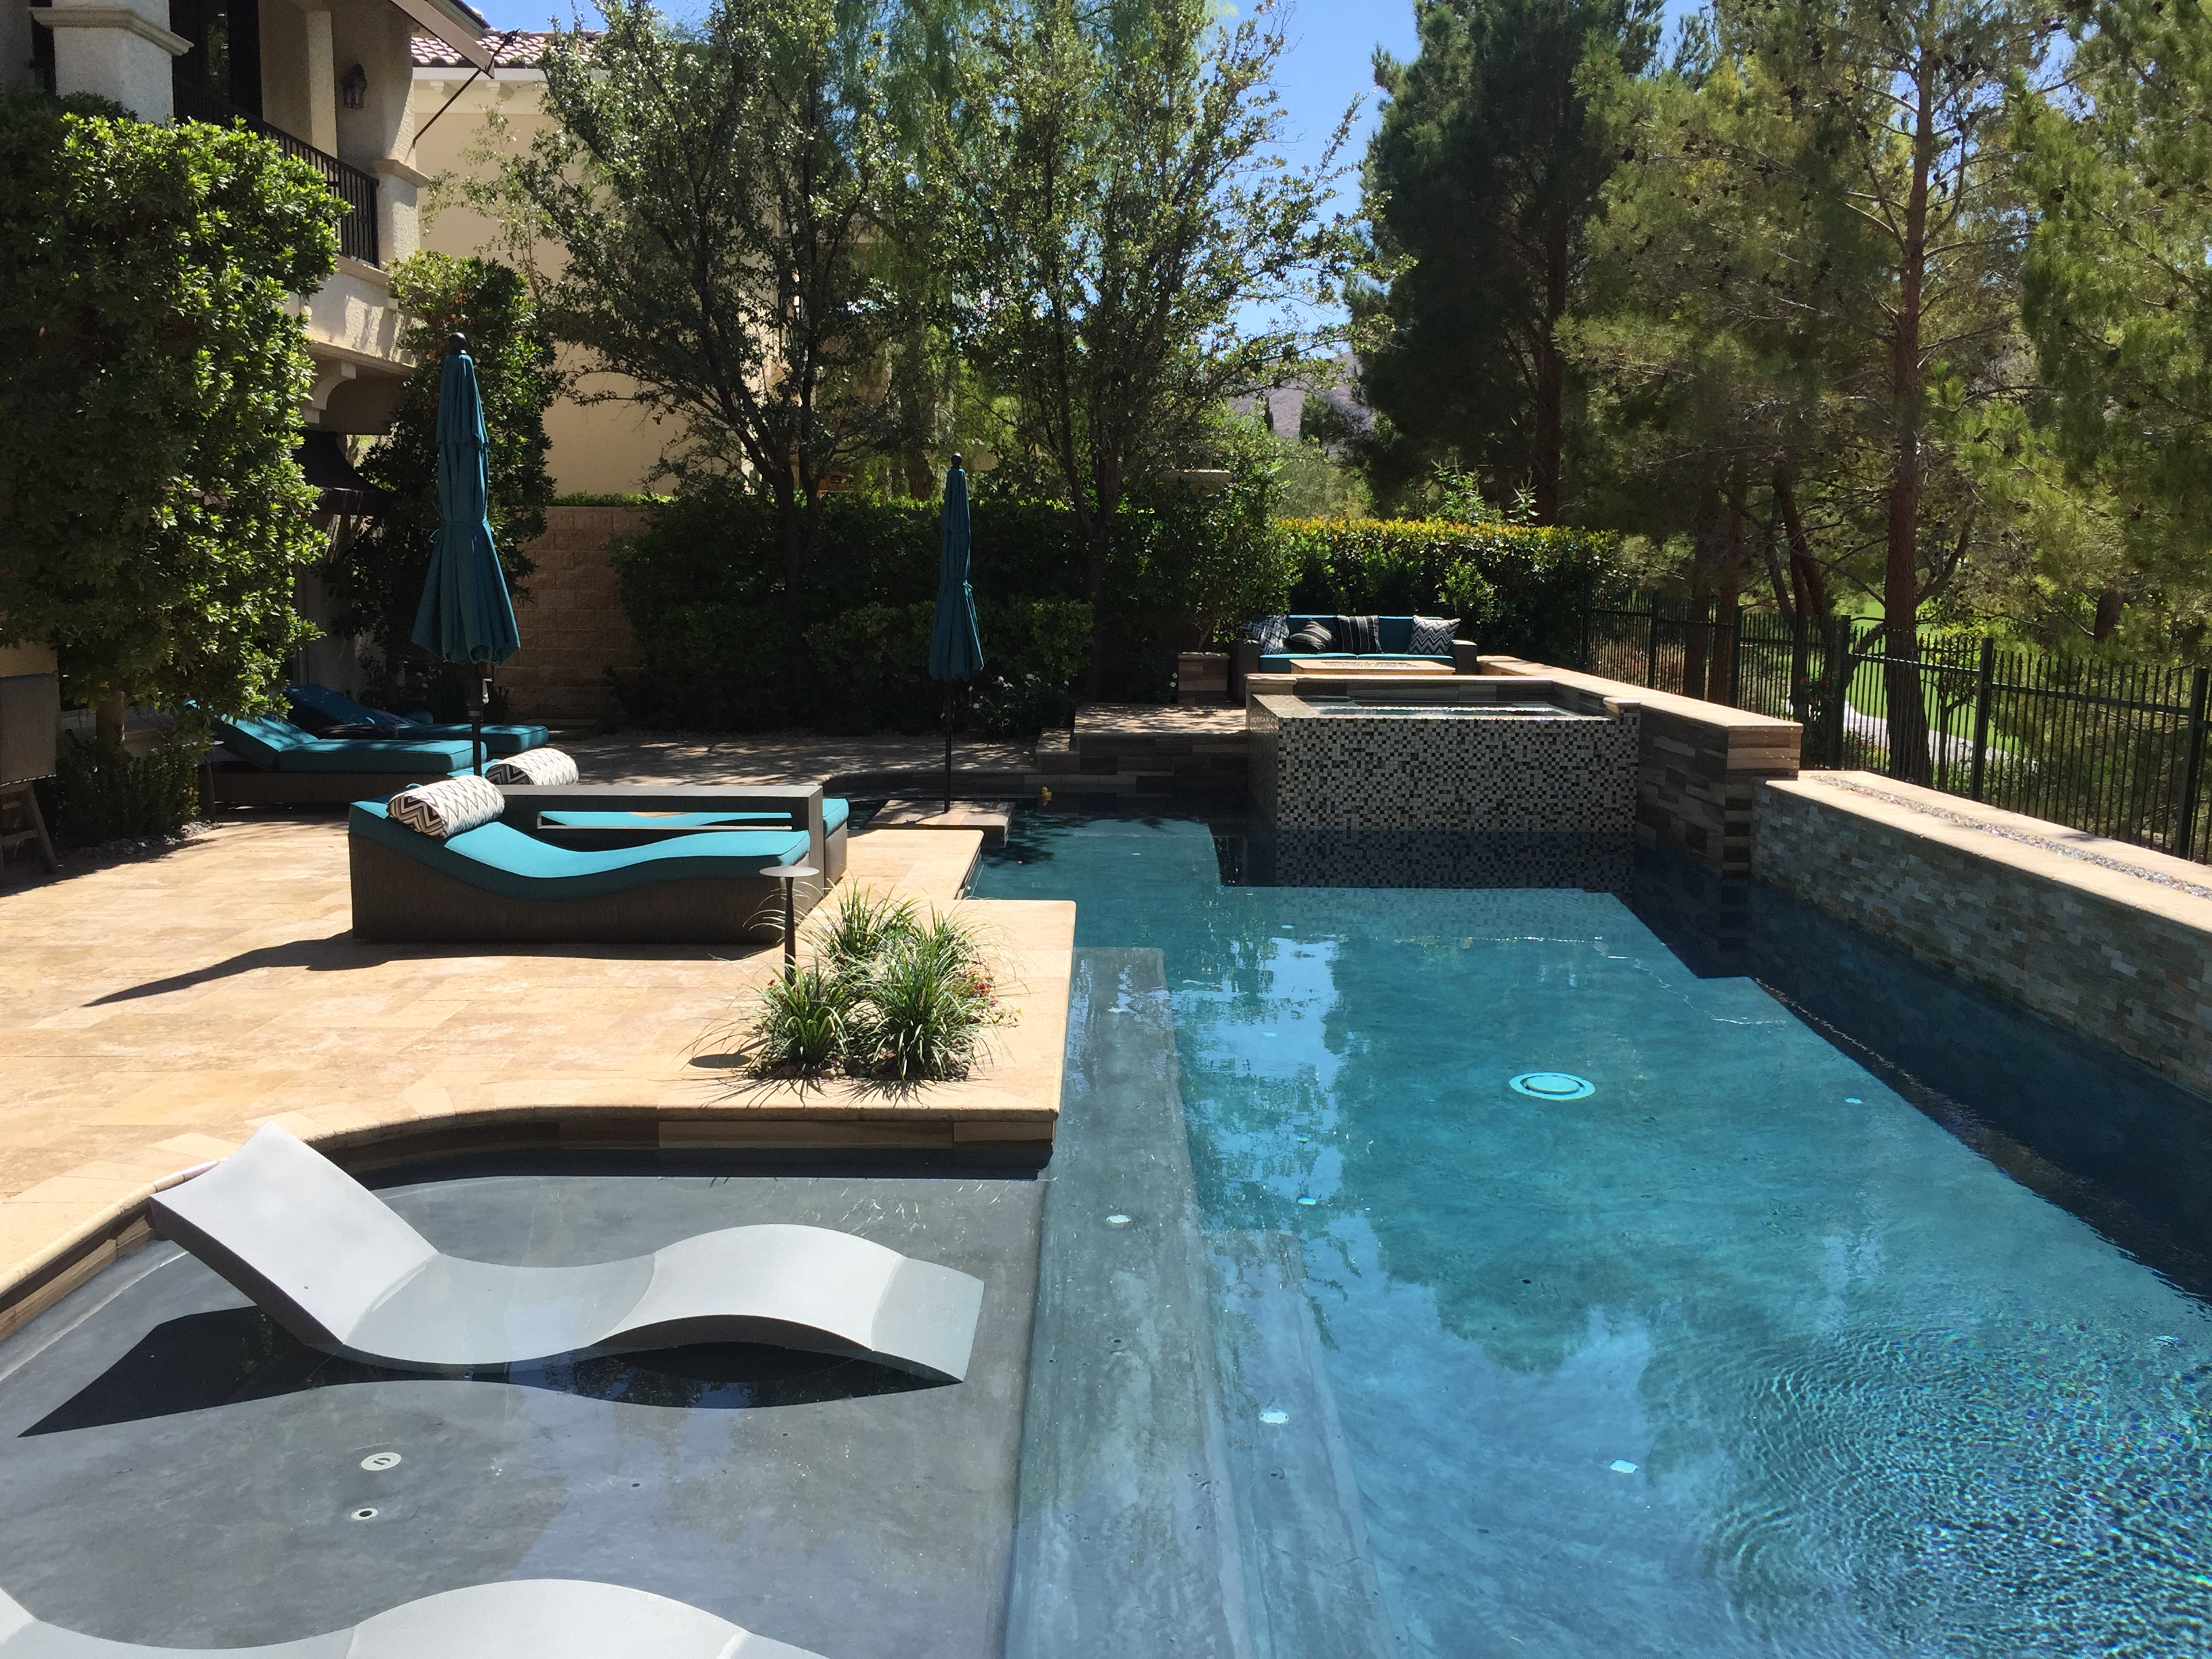 Las Vegas Backyard Landscaping Design New Backyard Resort  Las Vegas Pool Design Pool Contractor Pool . Design Decoration